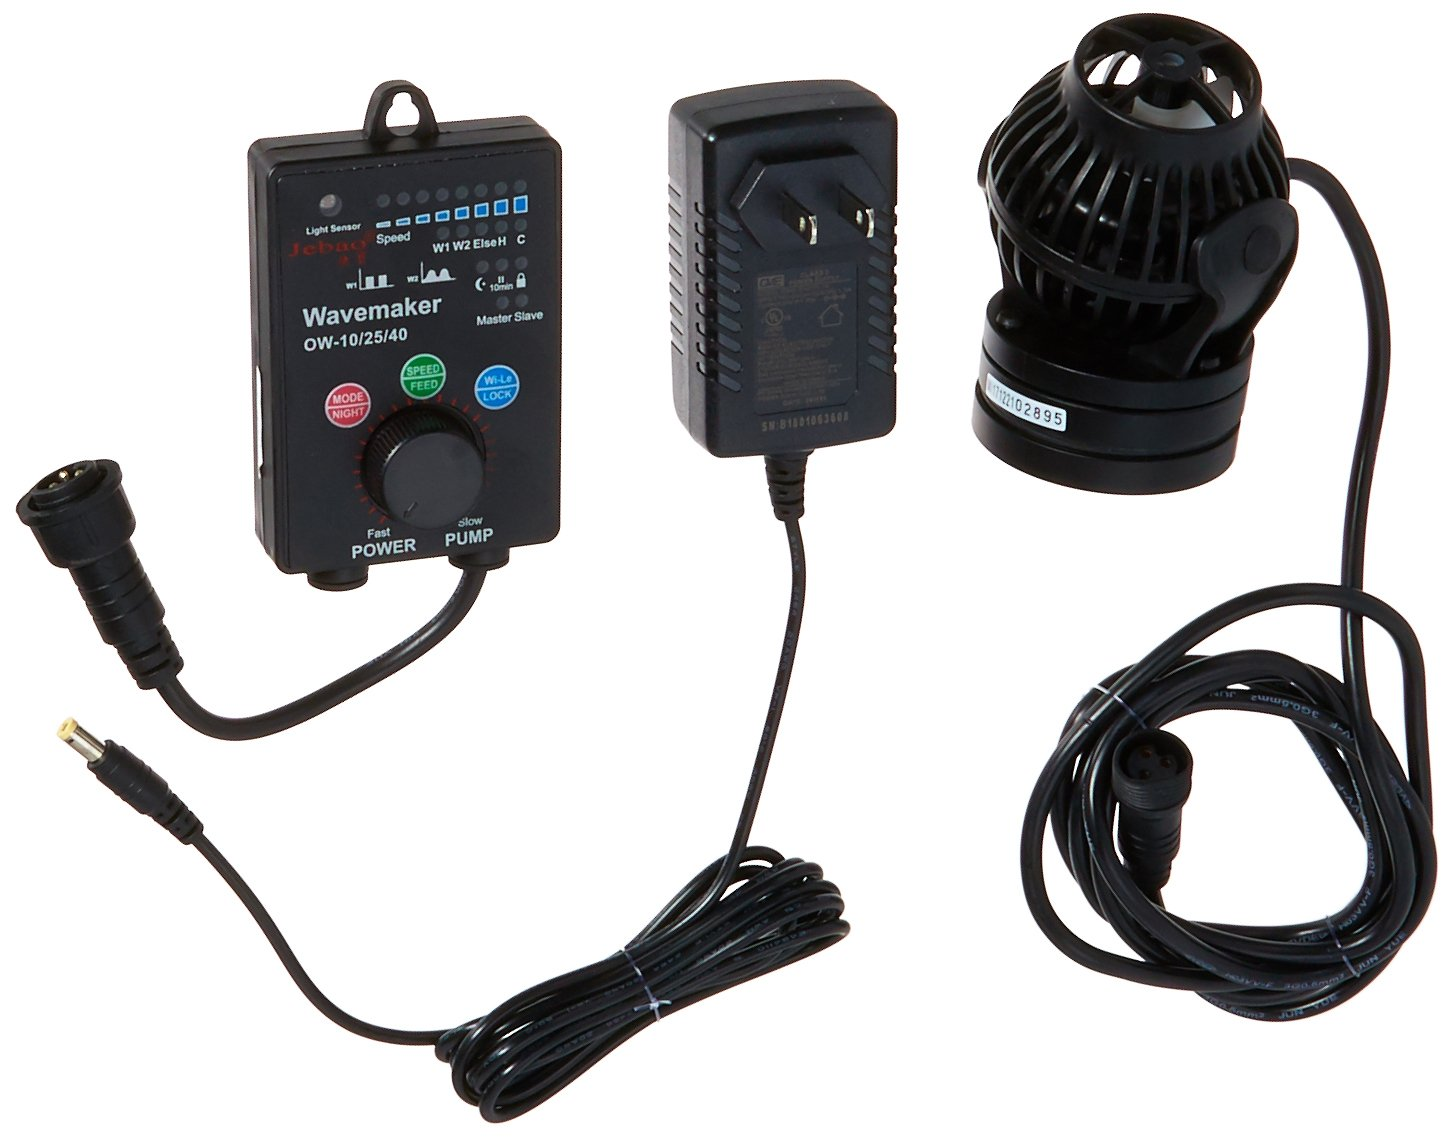 Jebao OW-25 Wavemaker 185-2245 GPH with Controller and Magnet Mount by Jebao